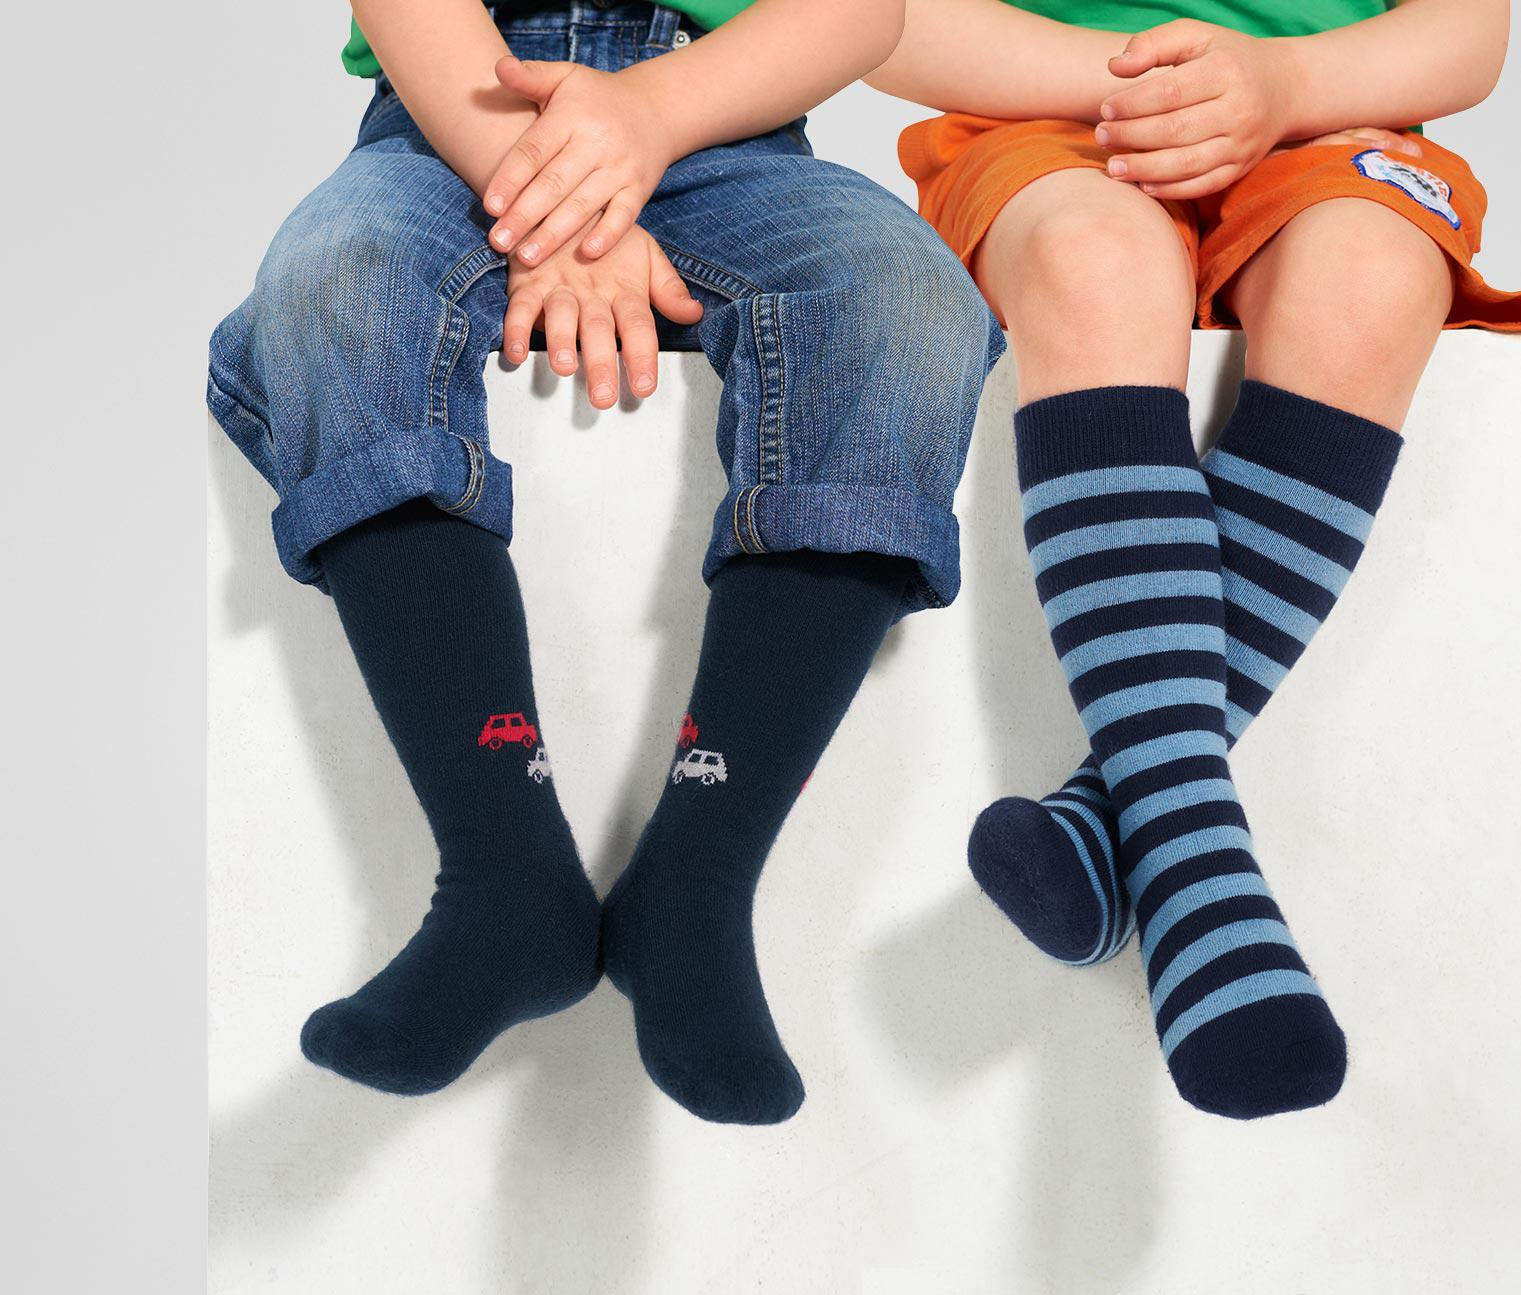 Boy's Dress Knee Socks for Shorts Knickers or Outfits, Newborn to Boys, Choice of 4 Colors $ 5 out of 5 stars Little Things Mean A Lot. Cotton or Nylon Boys Special Occasion Socks. from $ 6 99 Prime. out of 5 stars MadSportsStuff. Crazy Socks with Safari Tiger Stripes Over the Calf Socks .